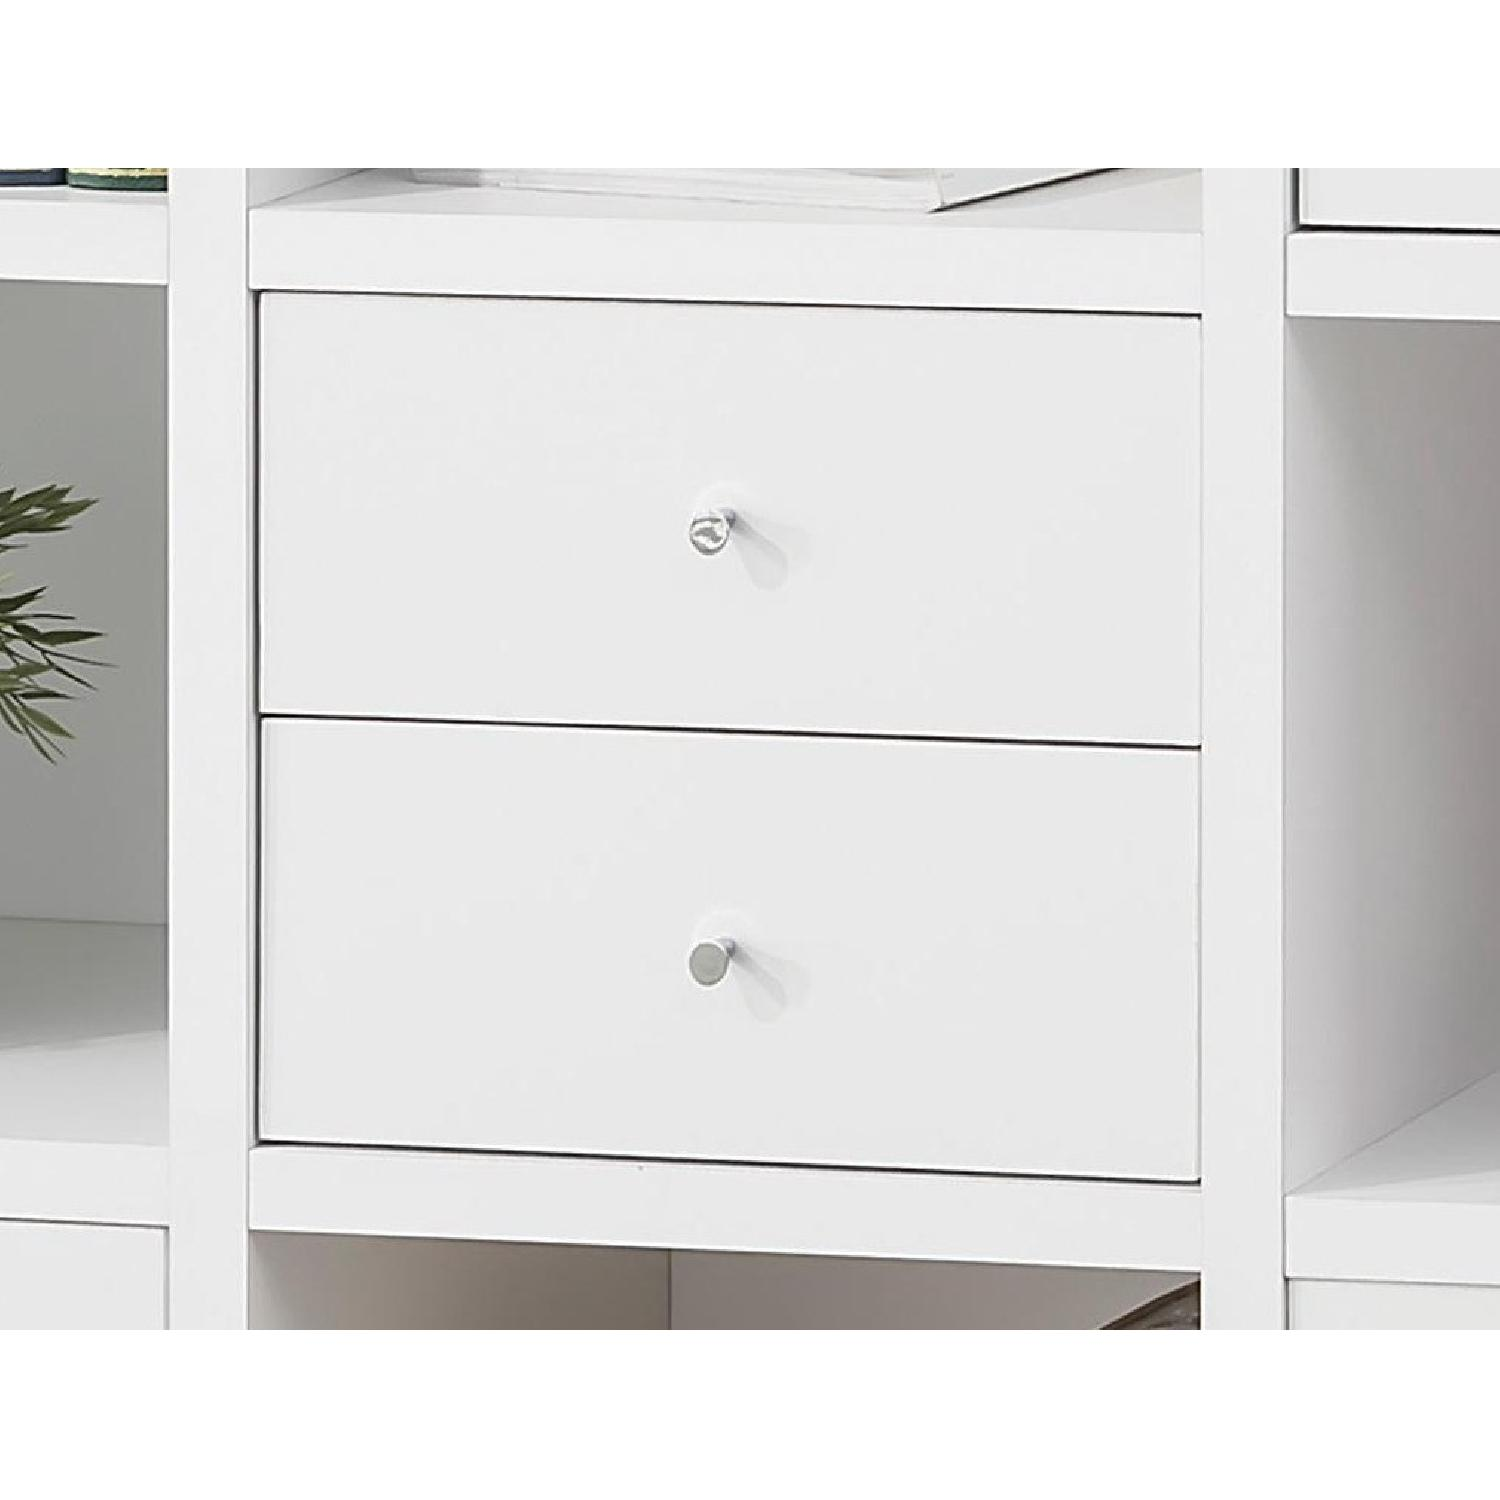 Reversible Asymmetric Shelf Cabinet in White Finish - image-2